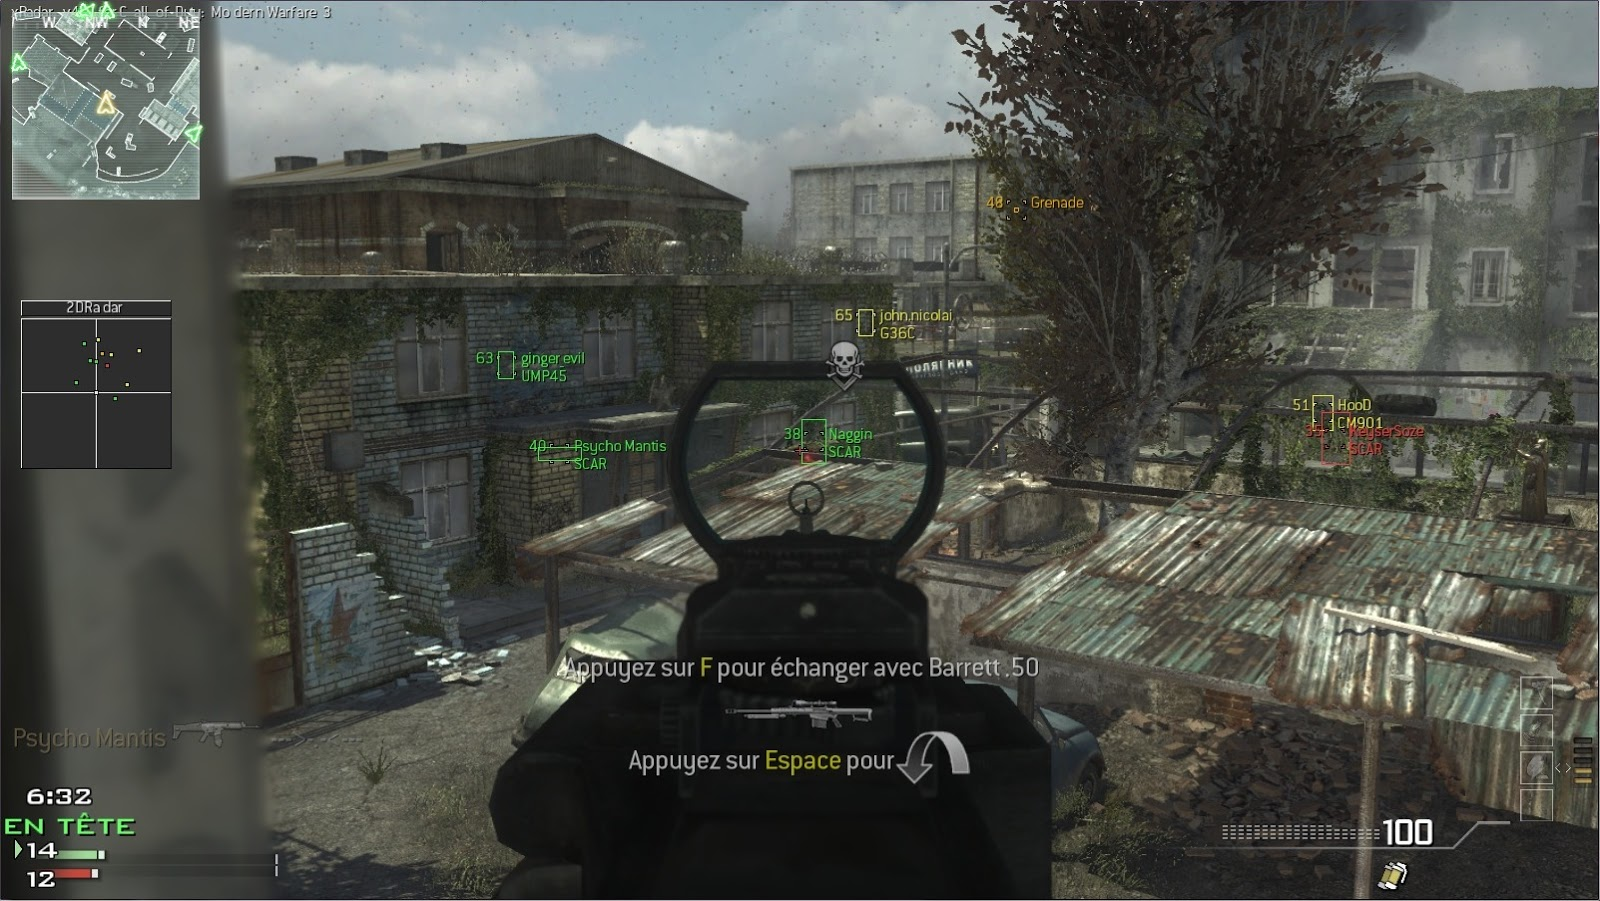 download wallhack for call of duty 4 modern warfare